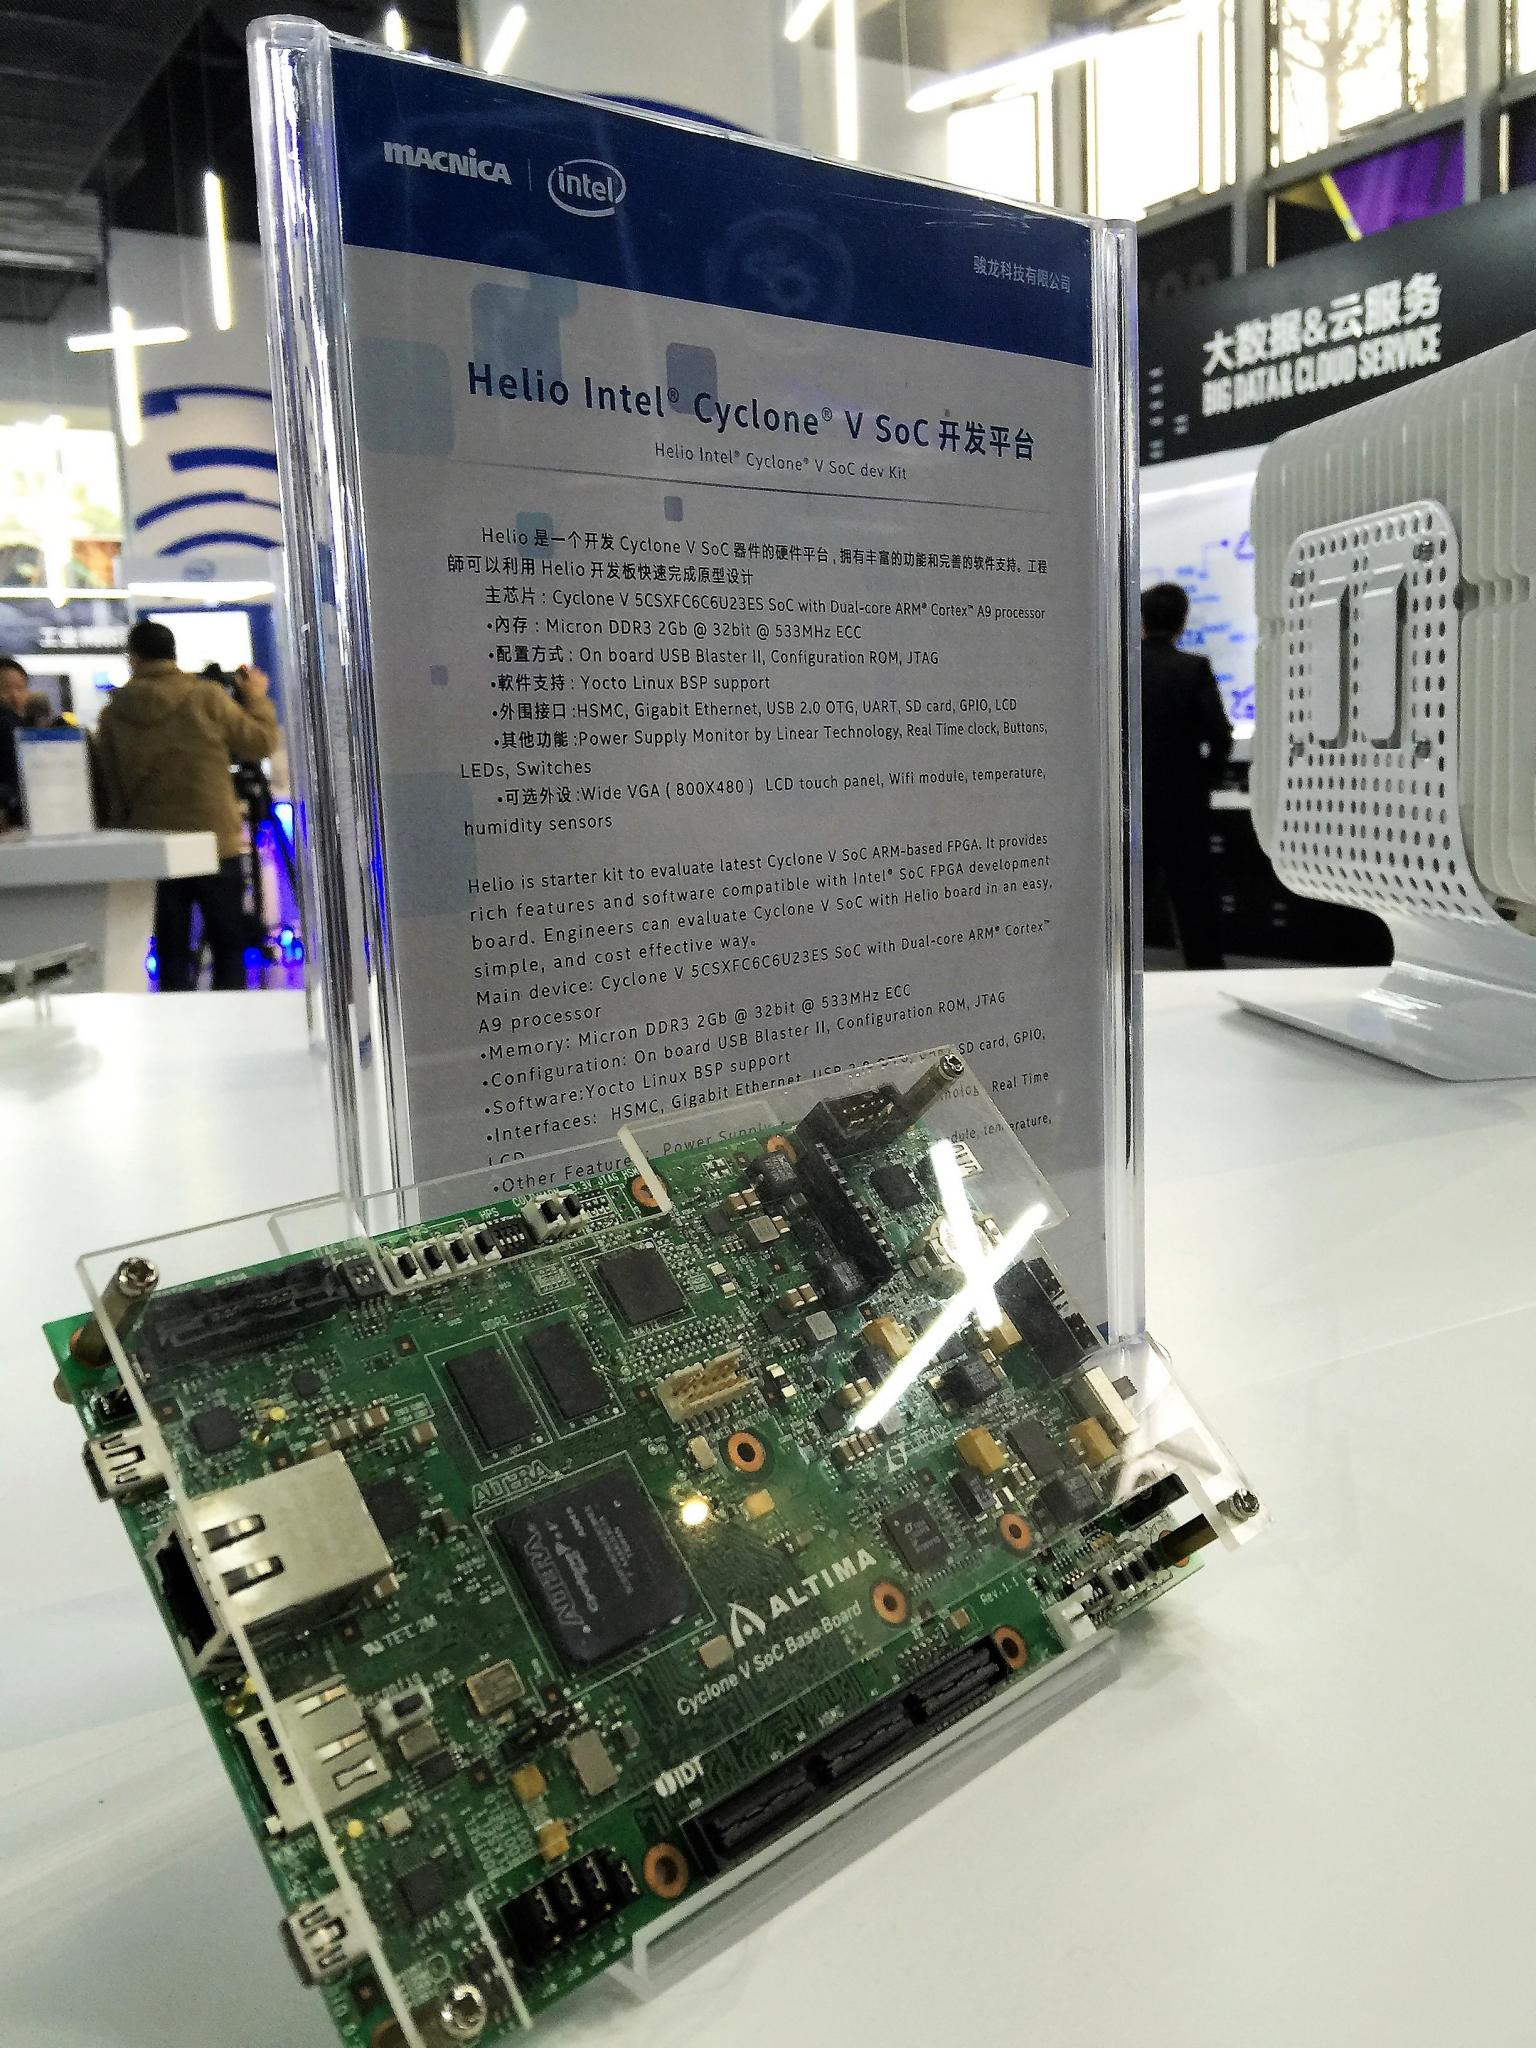 Macnica Cytech's reference designs are showcased in Intel